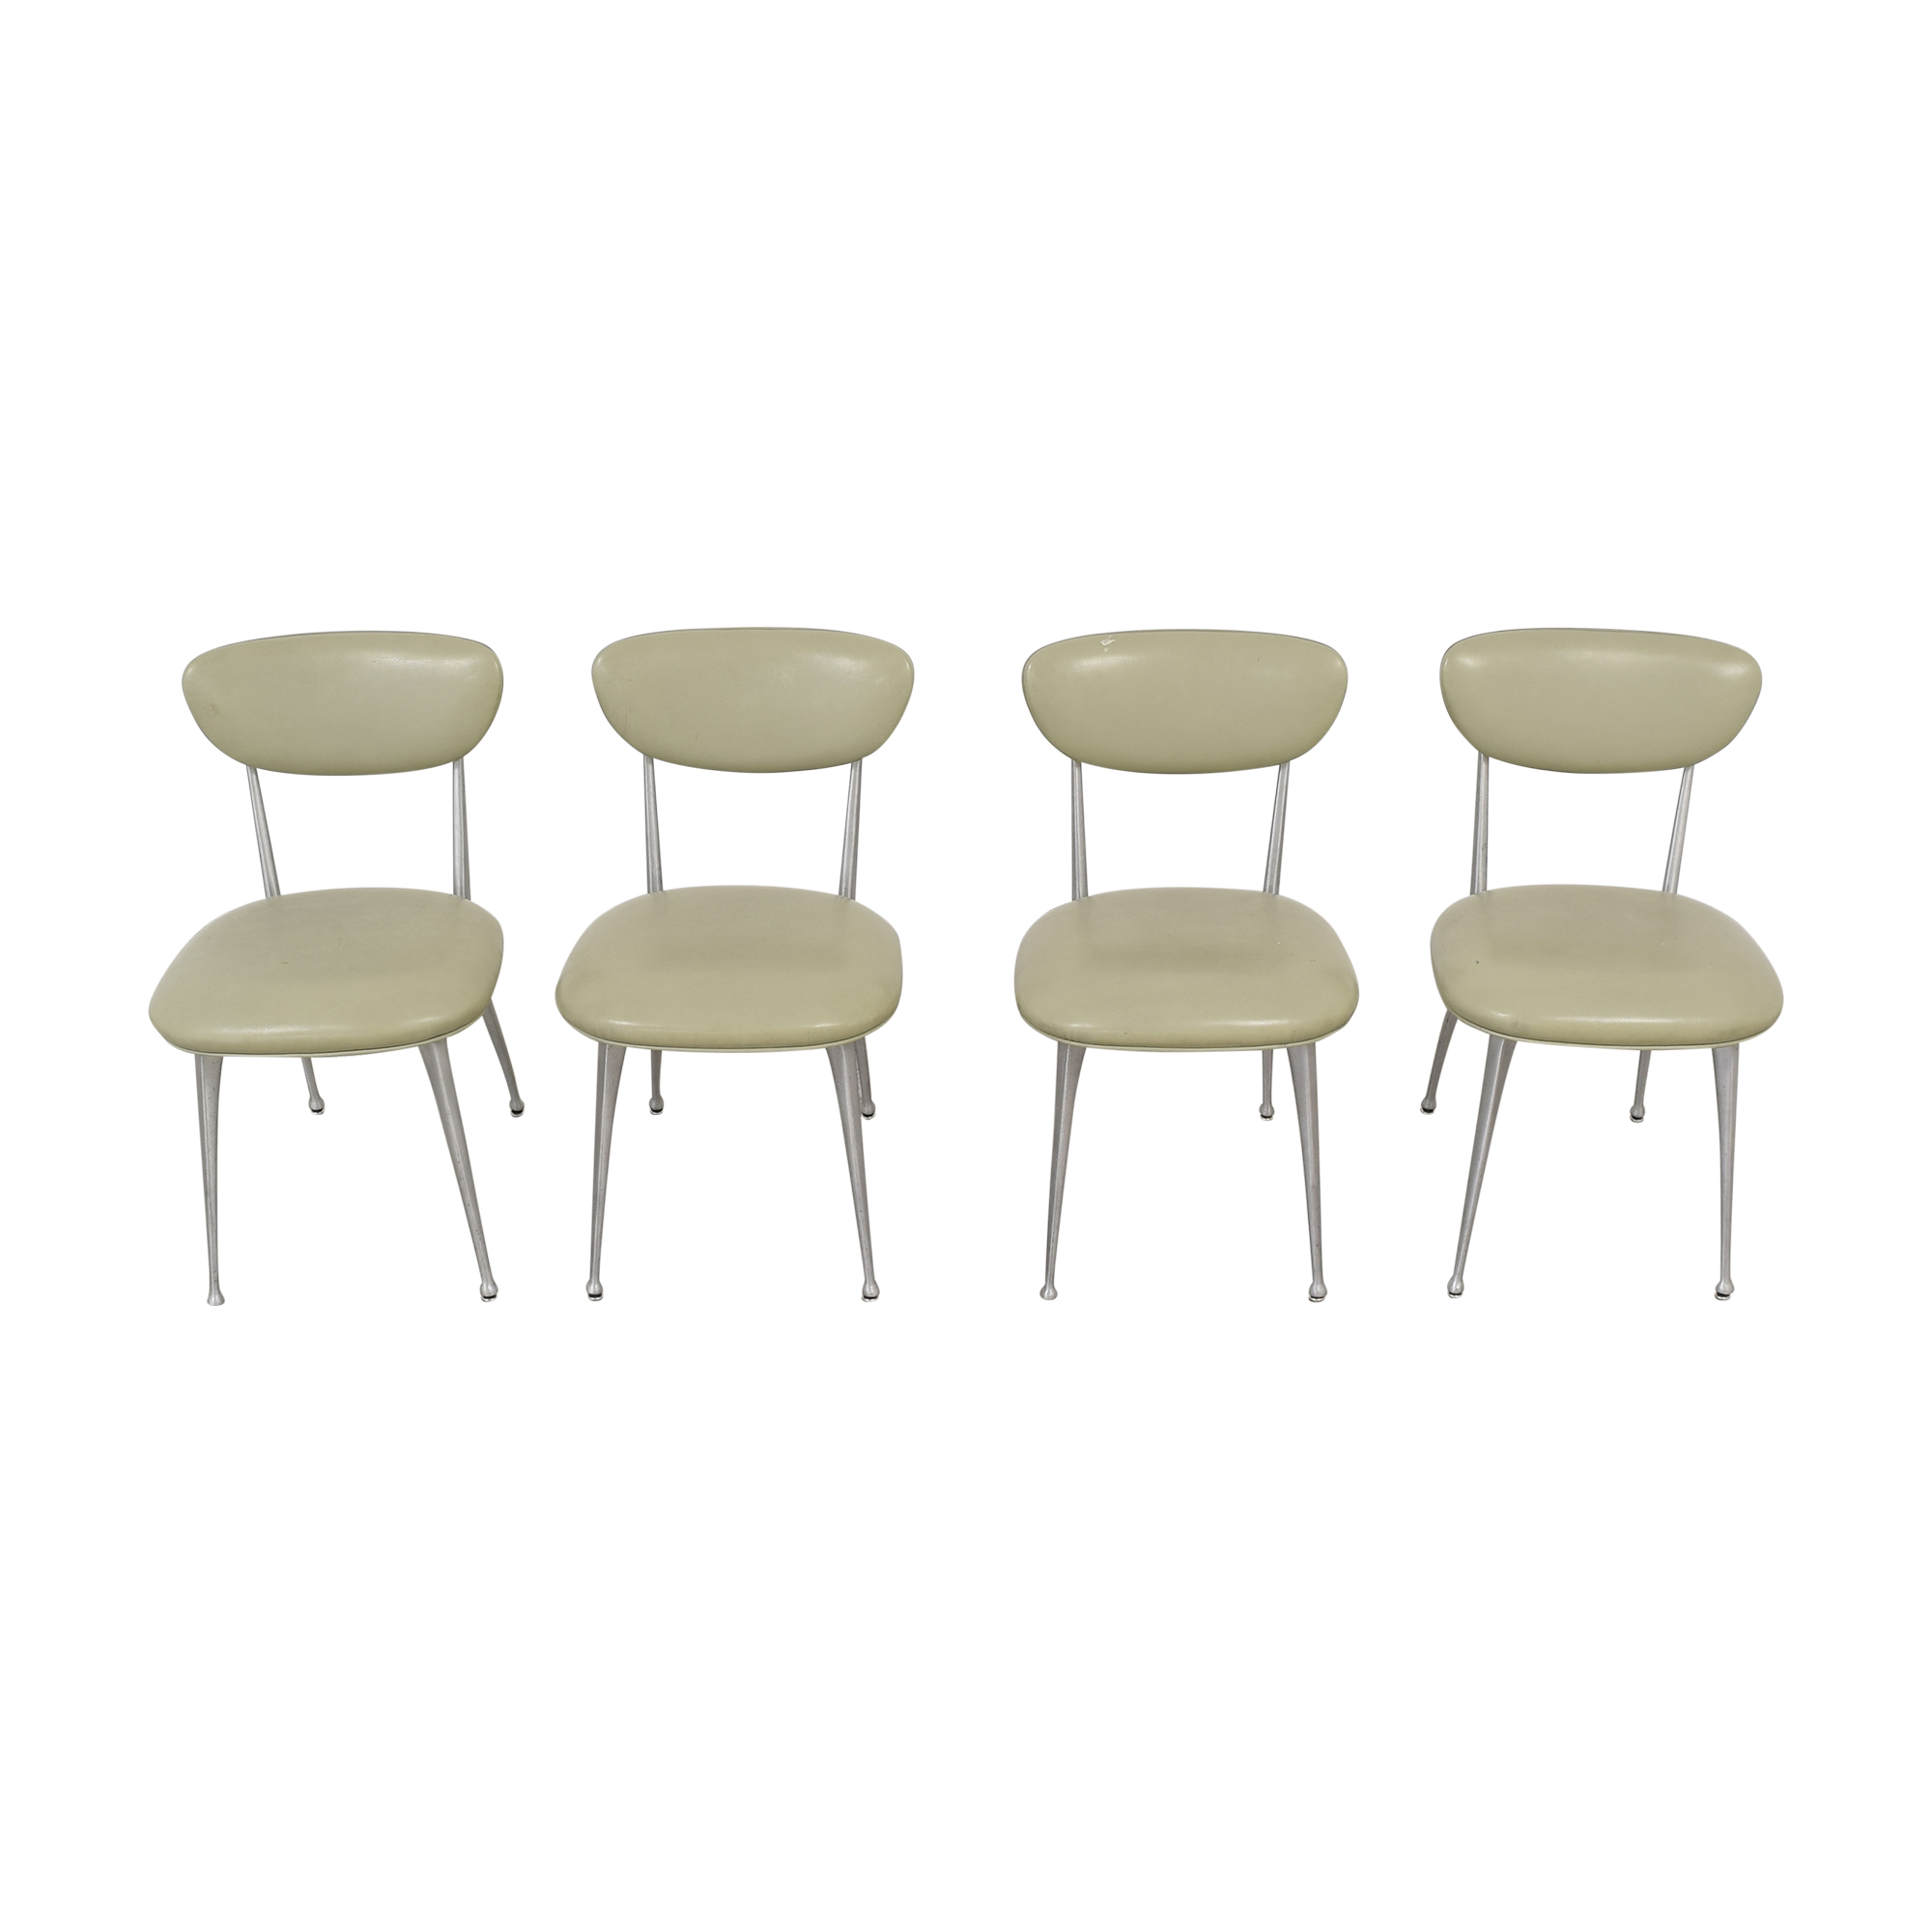 shop Modernica Vintage Dining Chairs Modernica Chairs